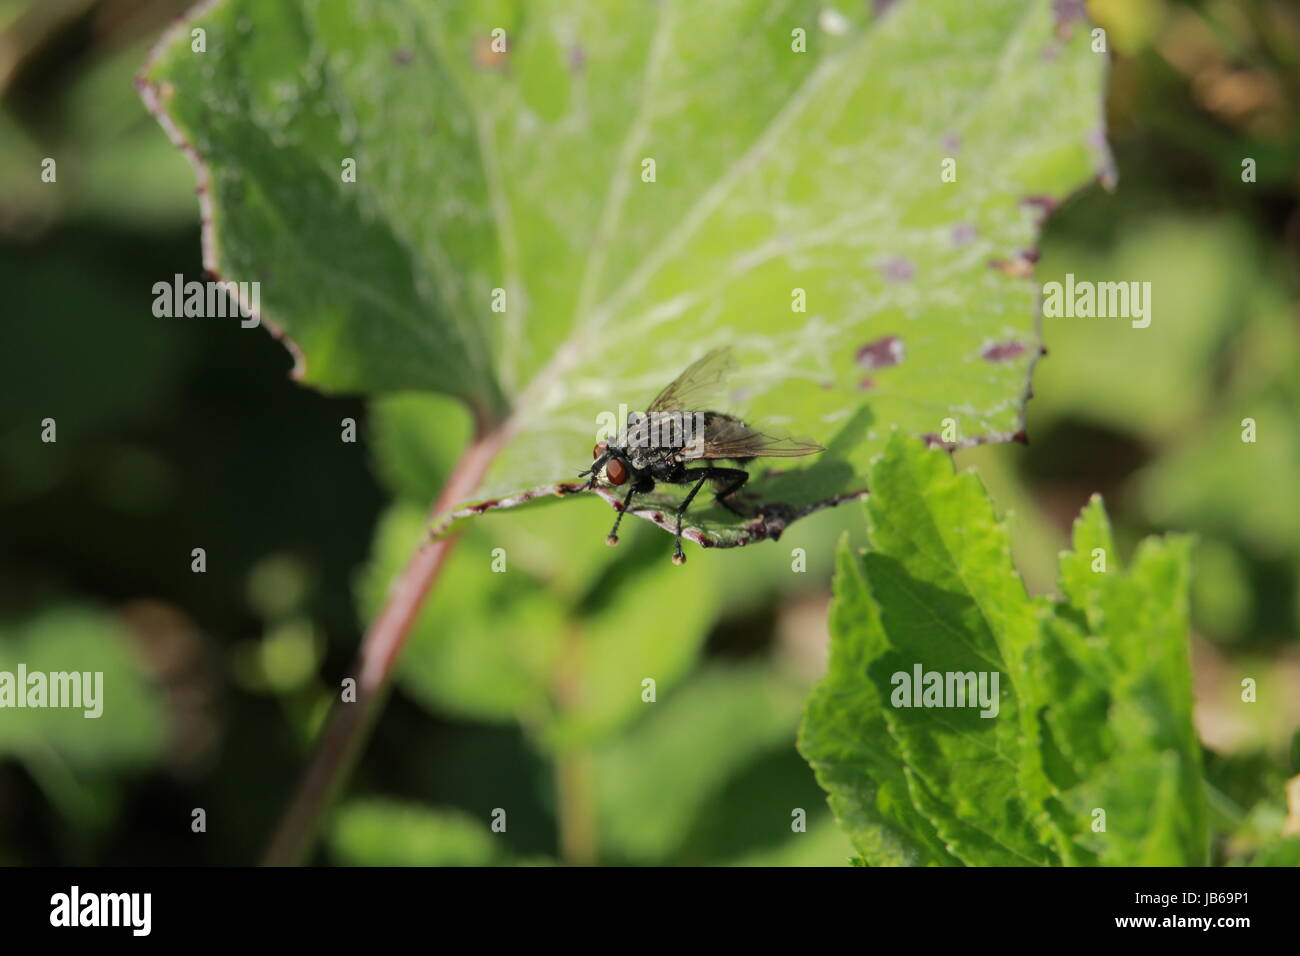 A small black striped fly that sits on a leaf in nature - Stock Image